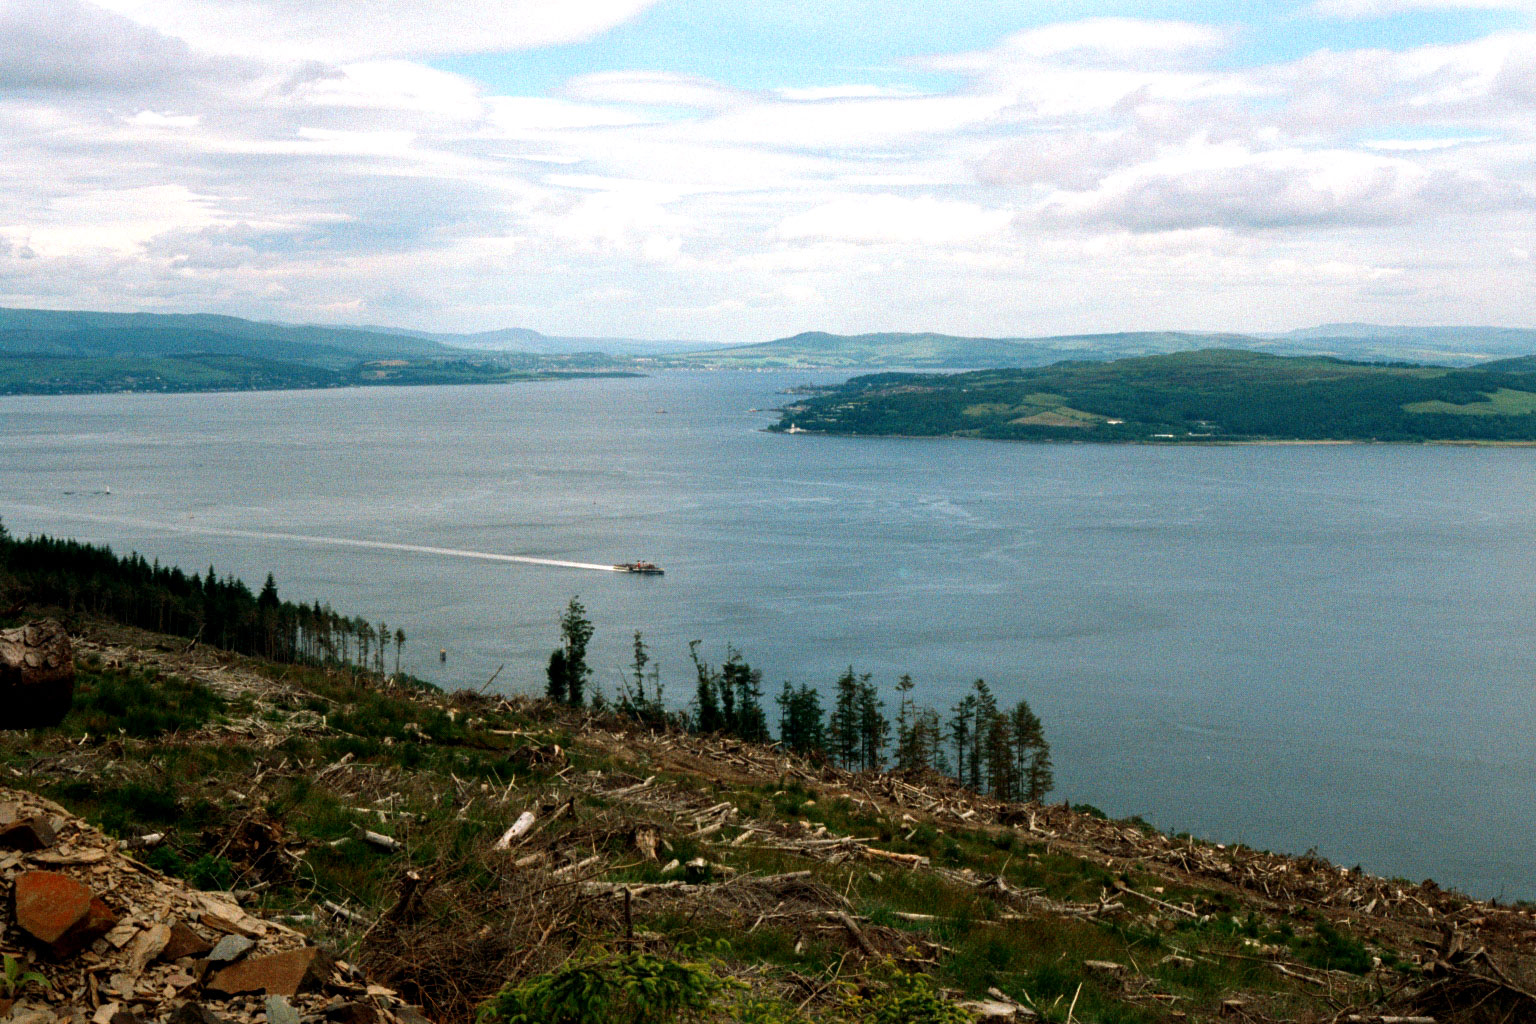 The inner firth seen from the Cowal peninsula near Dunoon, looking north east to the coast of Inverclyde at Cloch point south of Gourock and Greenock, and beyond that the Tail of the Bank. <!-- ship --> can be seen cruising south